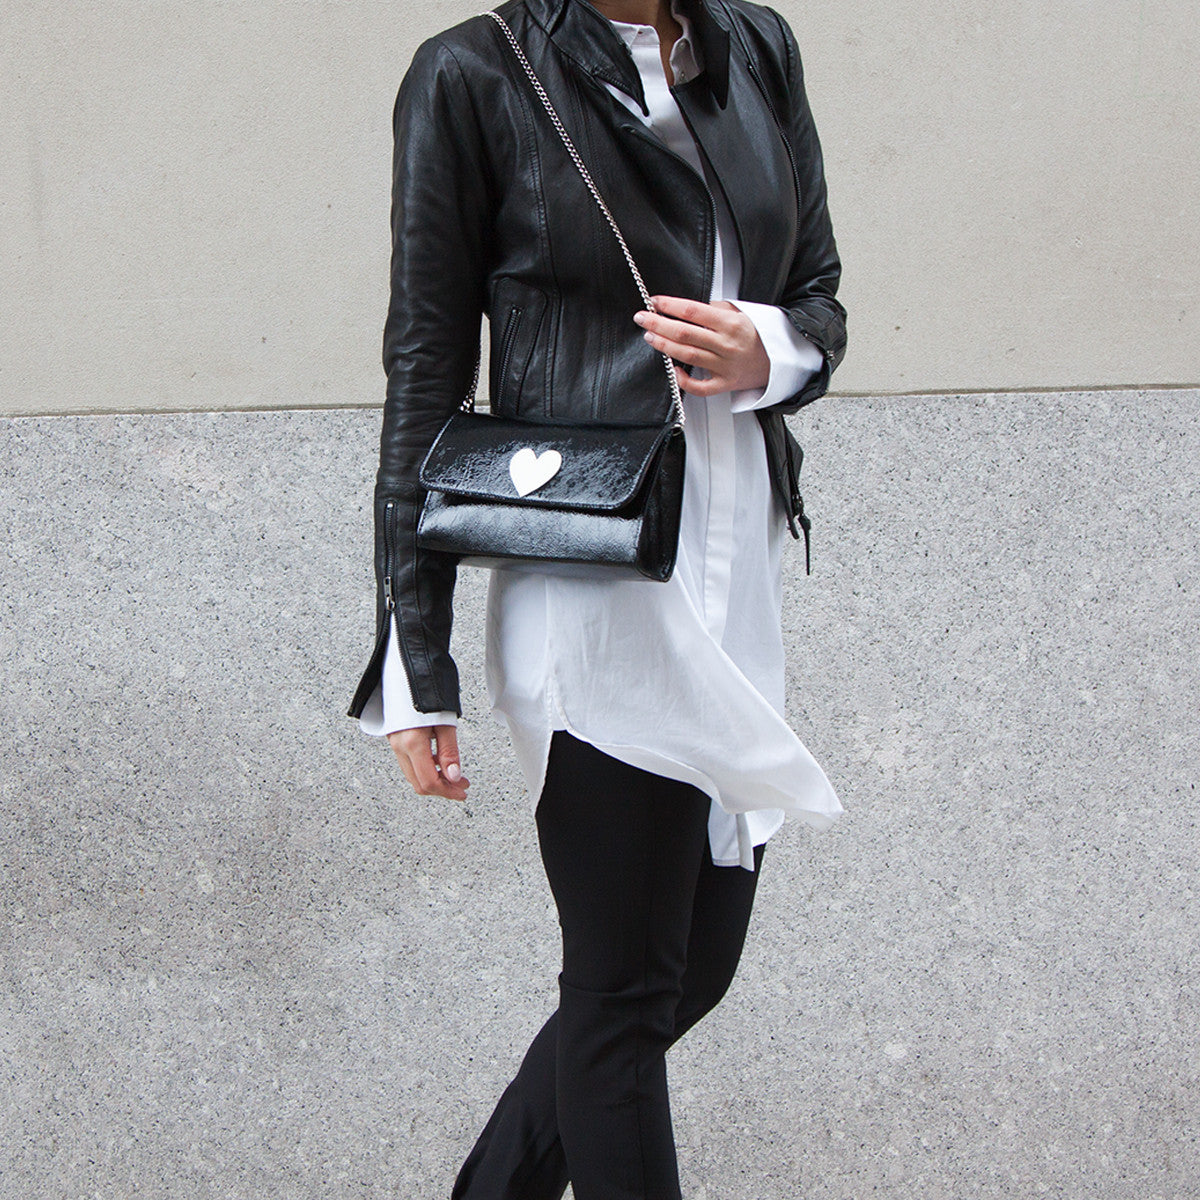 Mich Shoulder Bag Cracked Black Patent Leather w/ White Heart - erindananewyork - 3